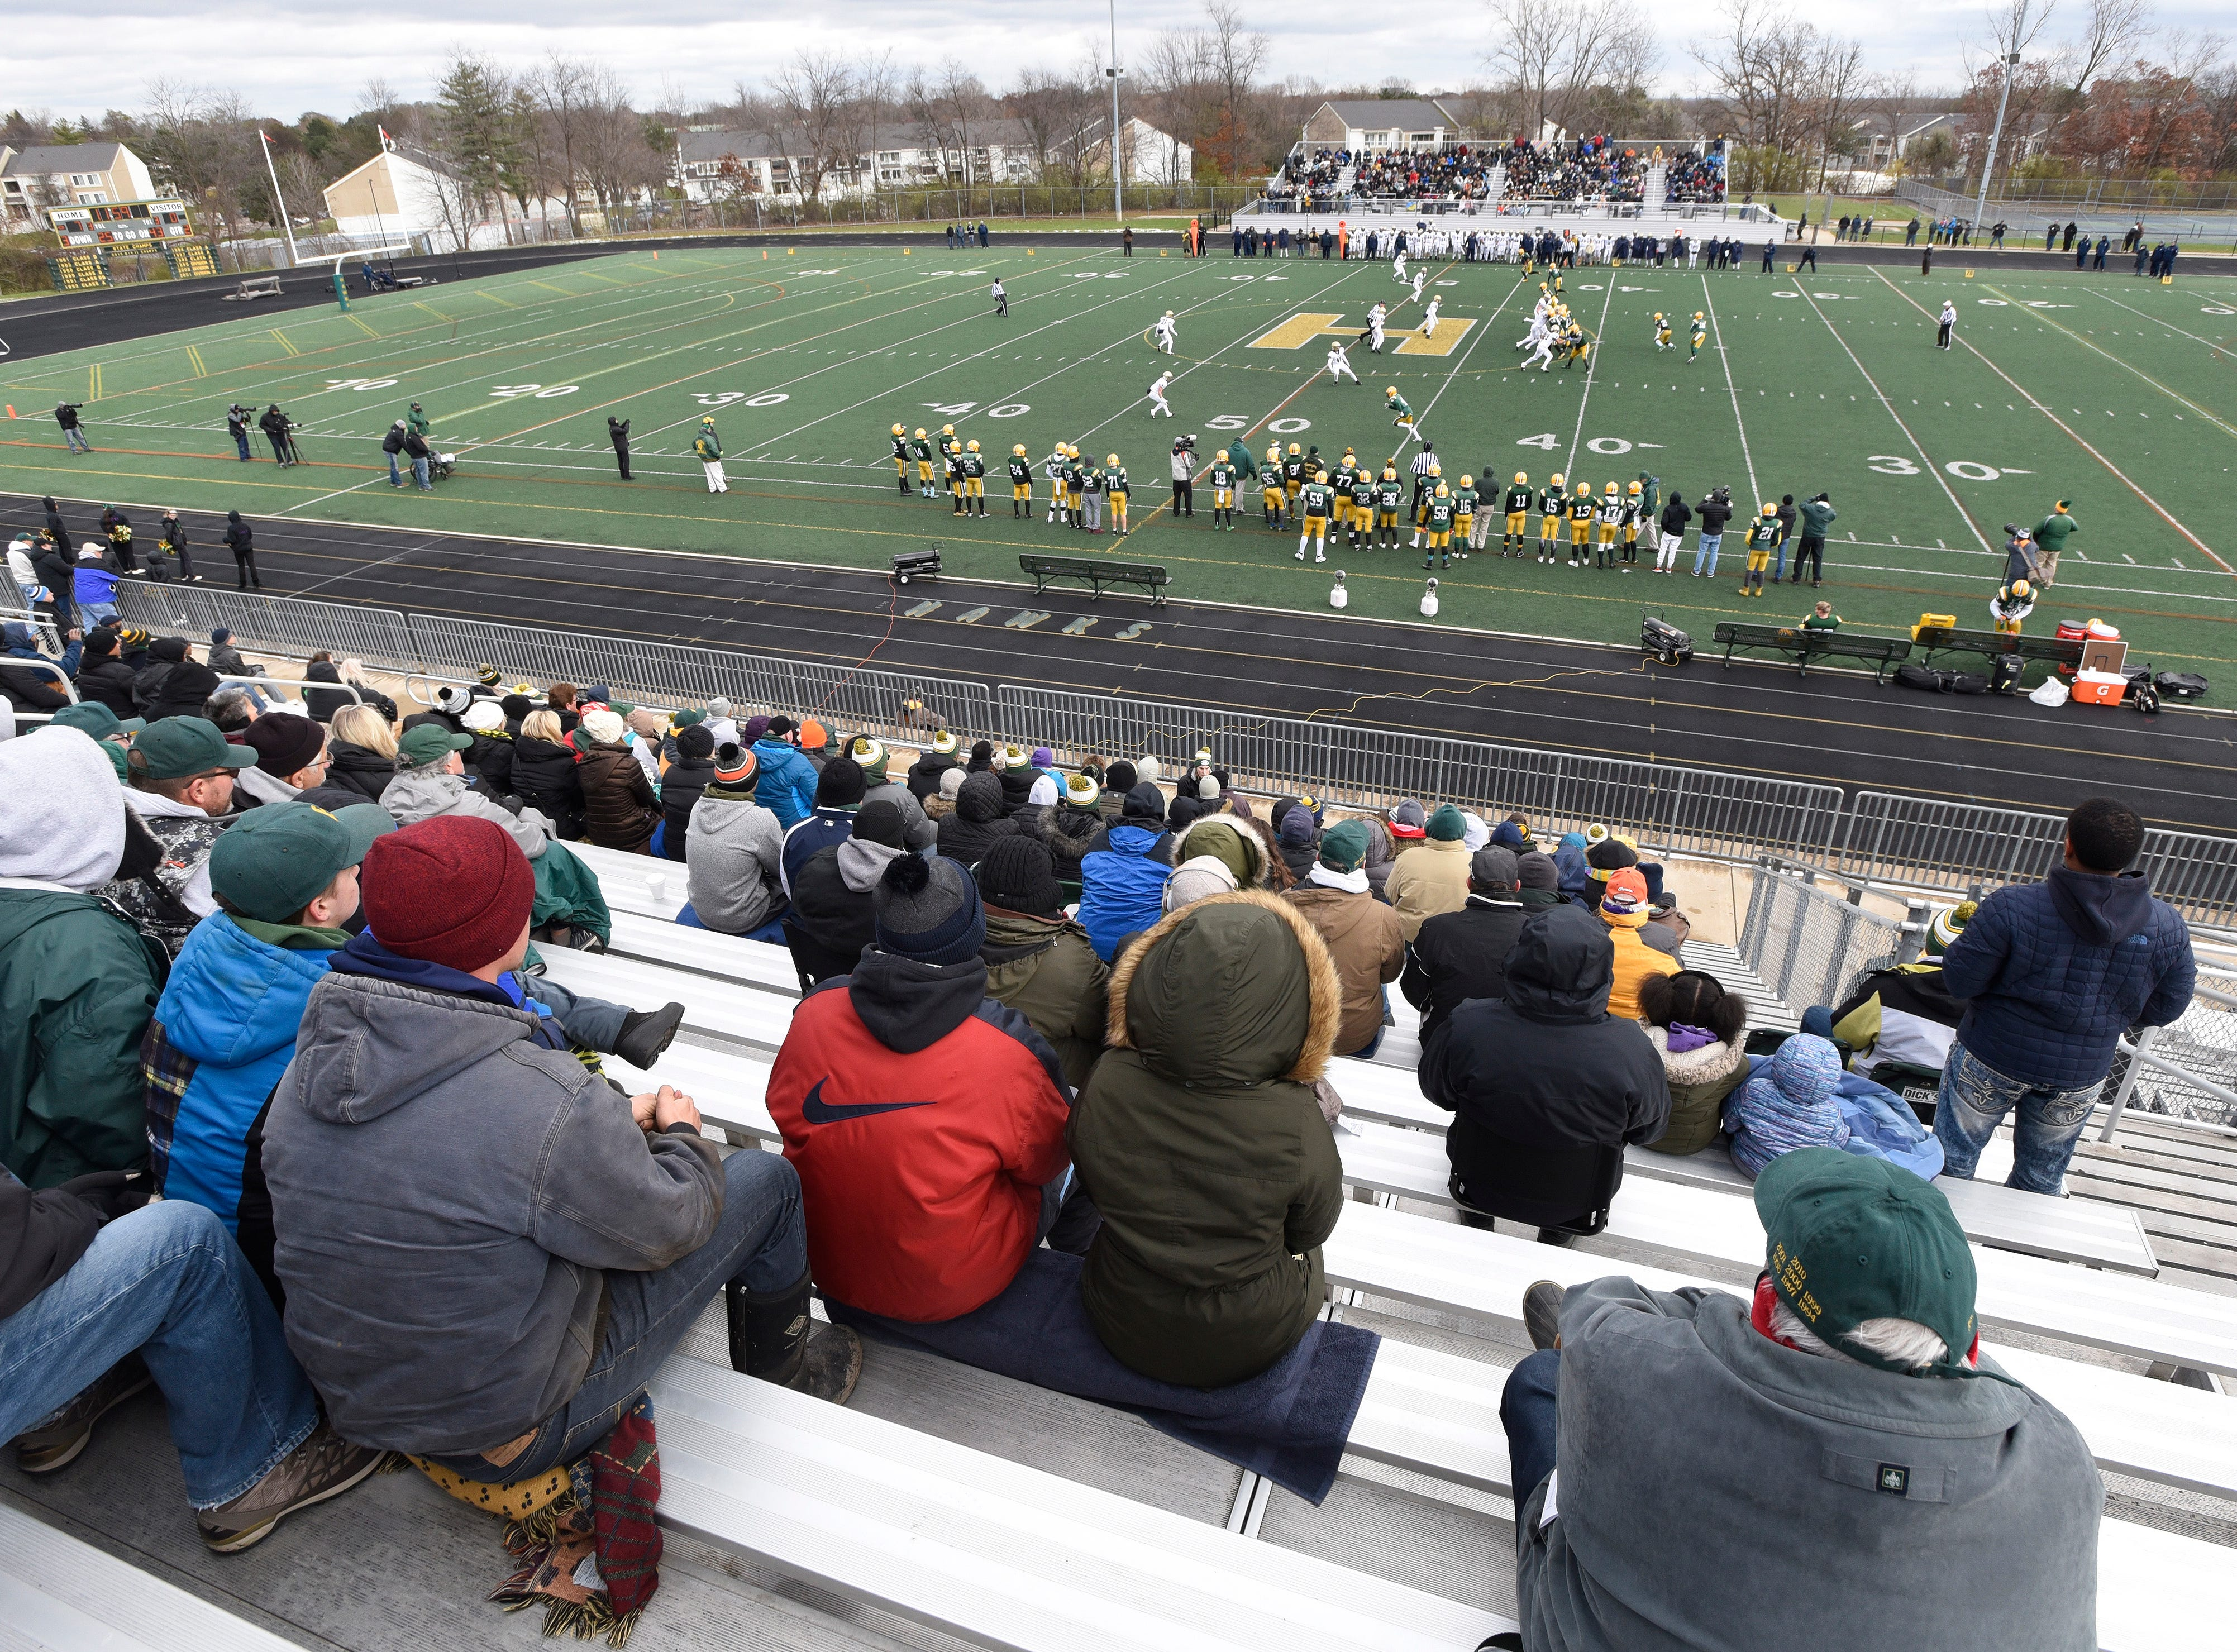 A small group of Farmington Hills Harrison fans brave the cold weather as they watch their team play against Chelsea in the second quarter.